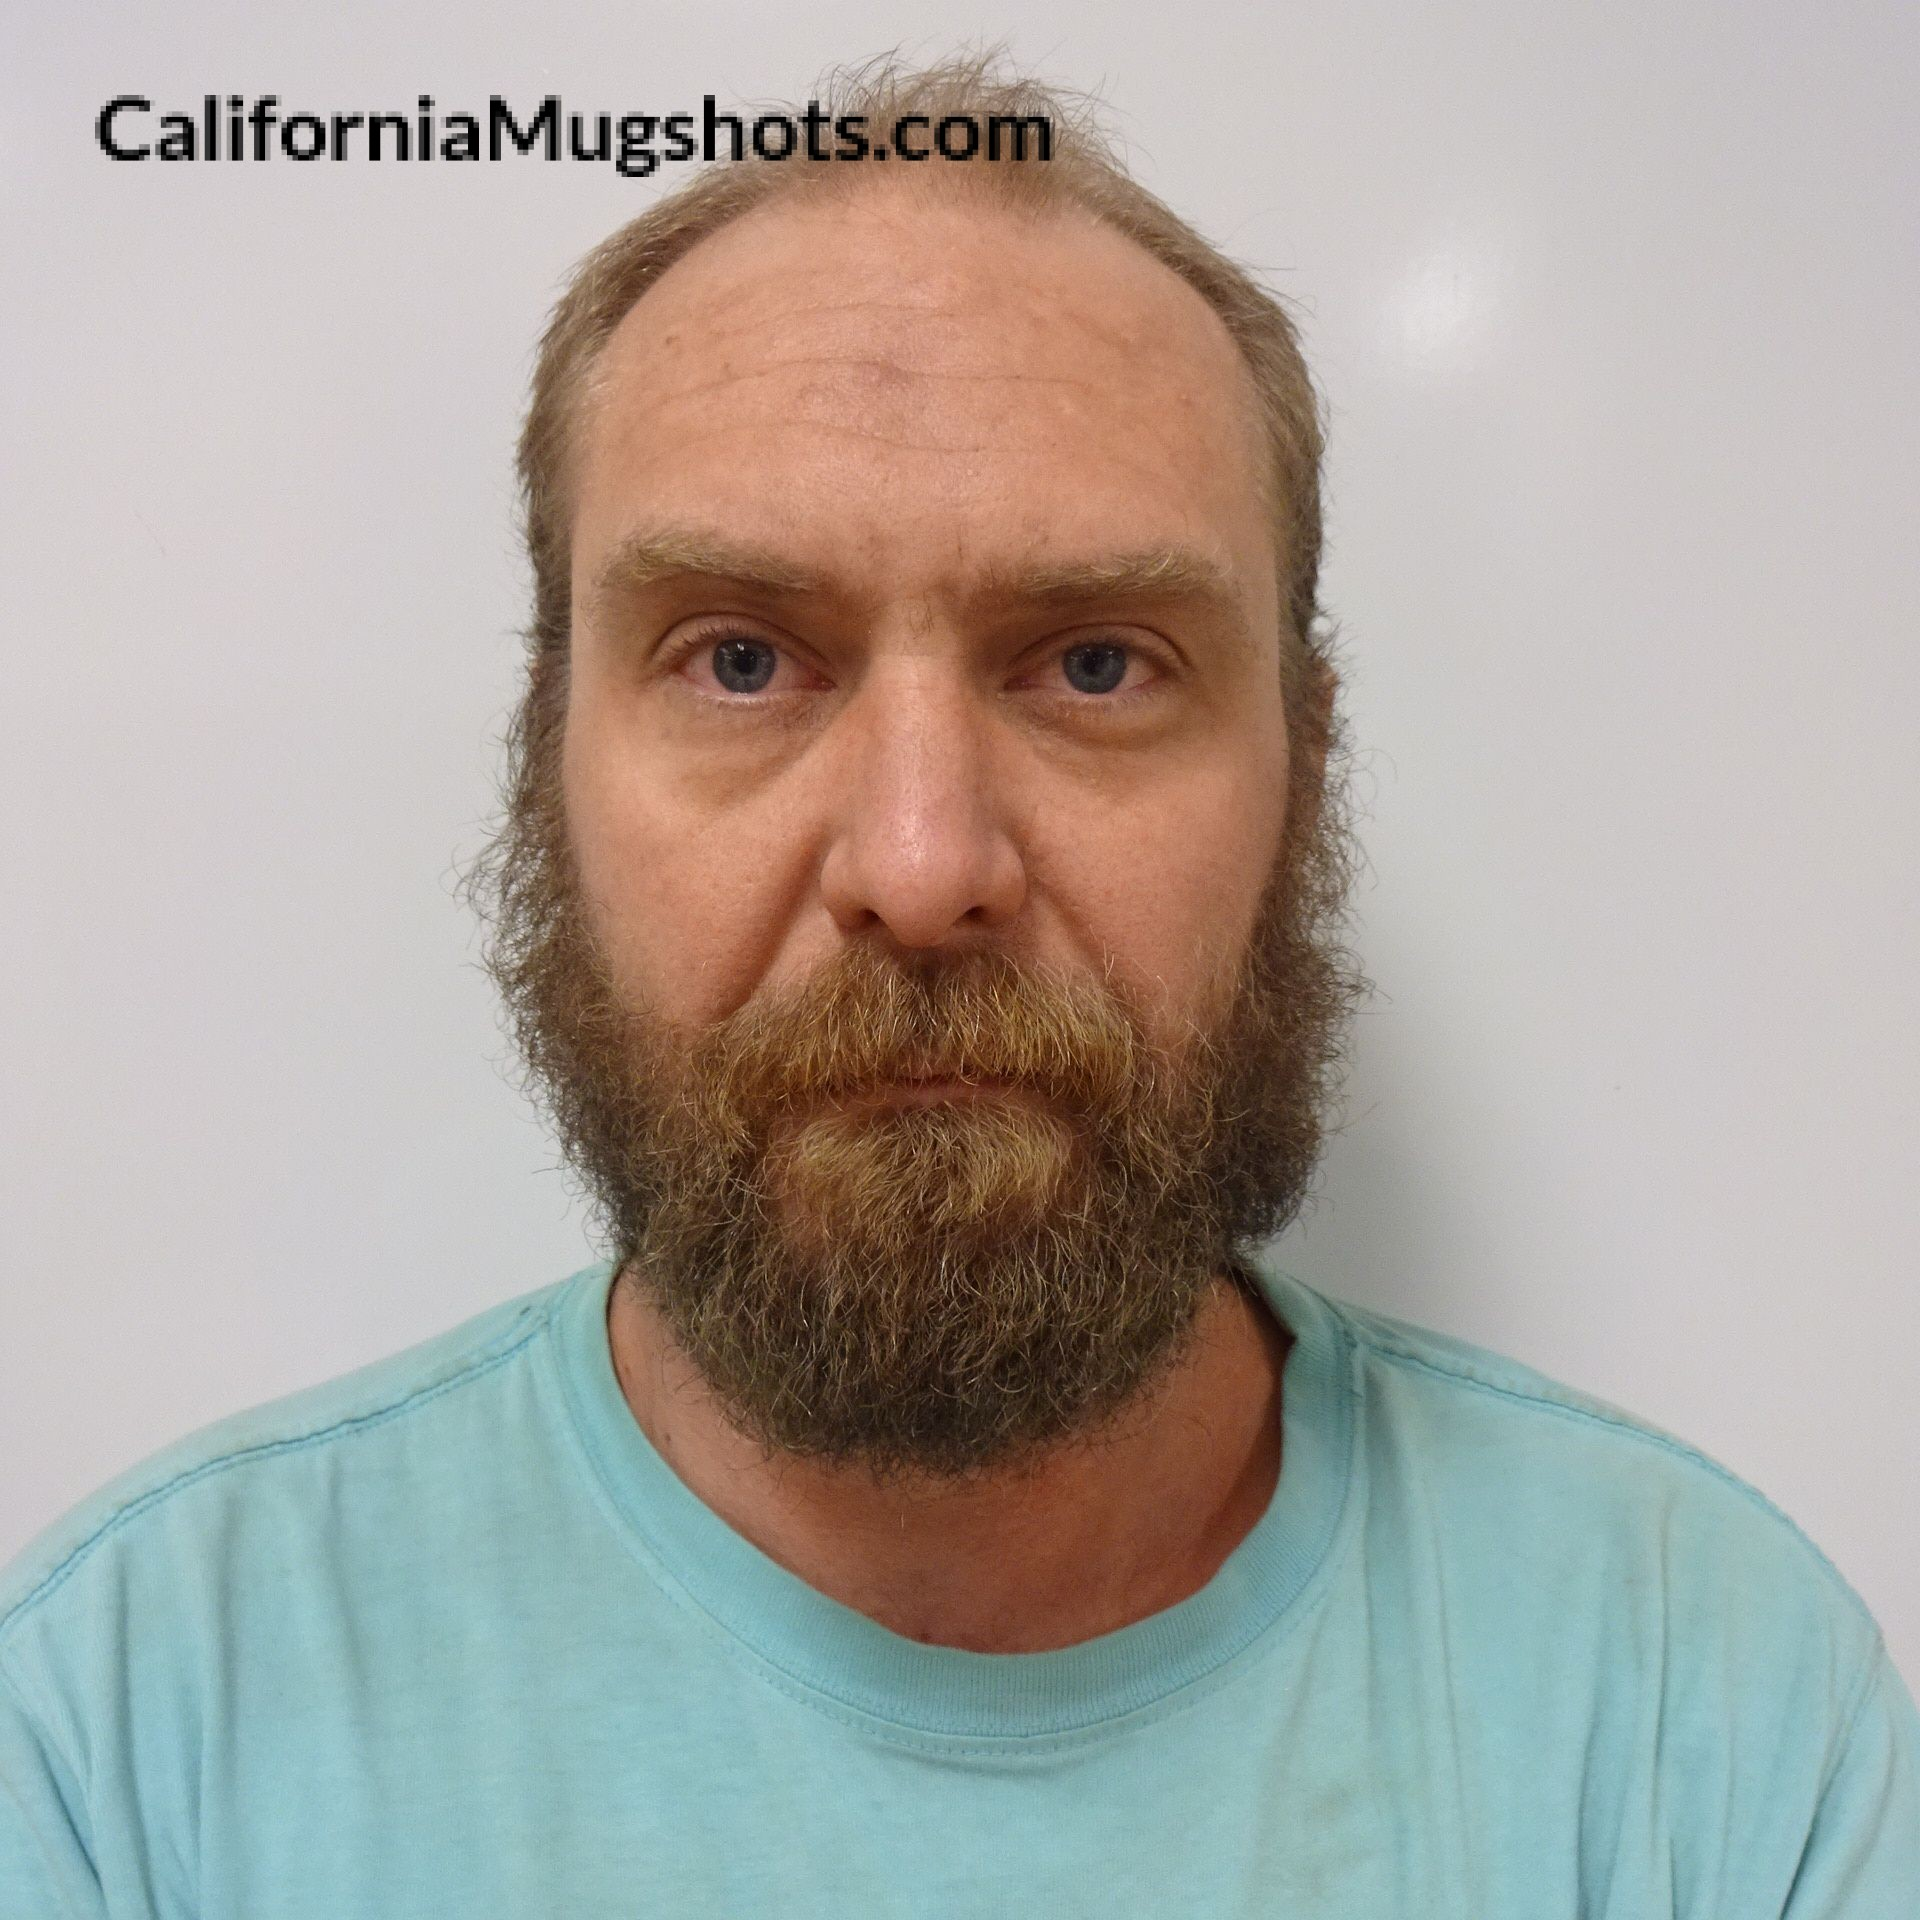 Arrest Photo of Andrew Nicholas Andresen